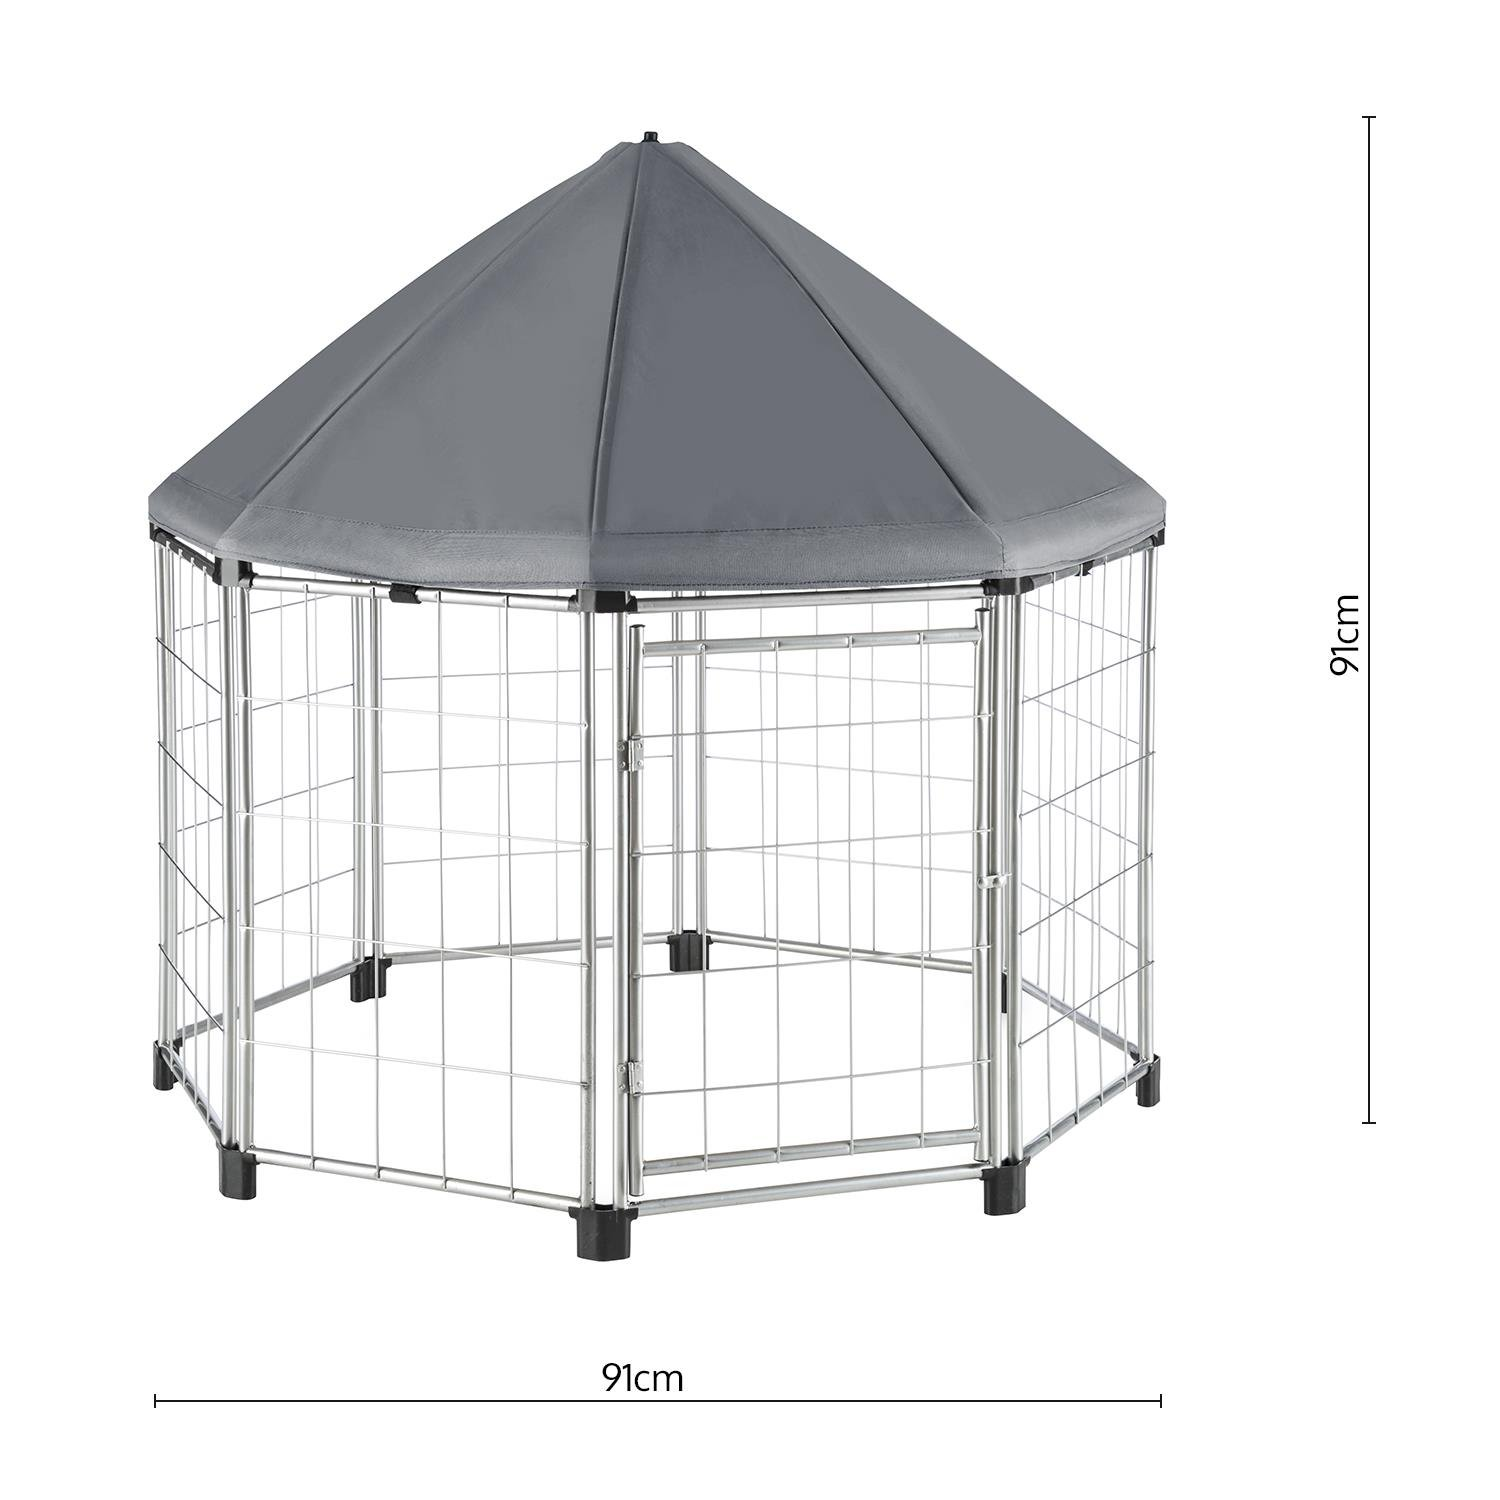 91 x 91 x 91cm, Water-Proof and UV-Resistant Sun Roof, Powder-Coated Metal Frame Beige OneConcept Fort Seasons Pet Pavilion With Canopy Puppy Enclosure